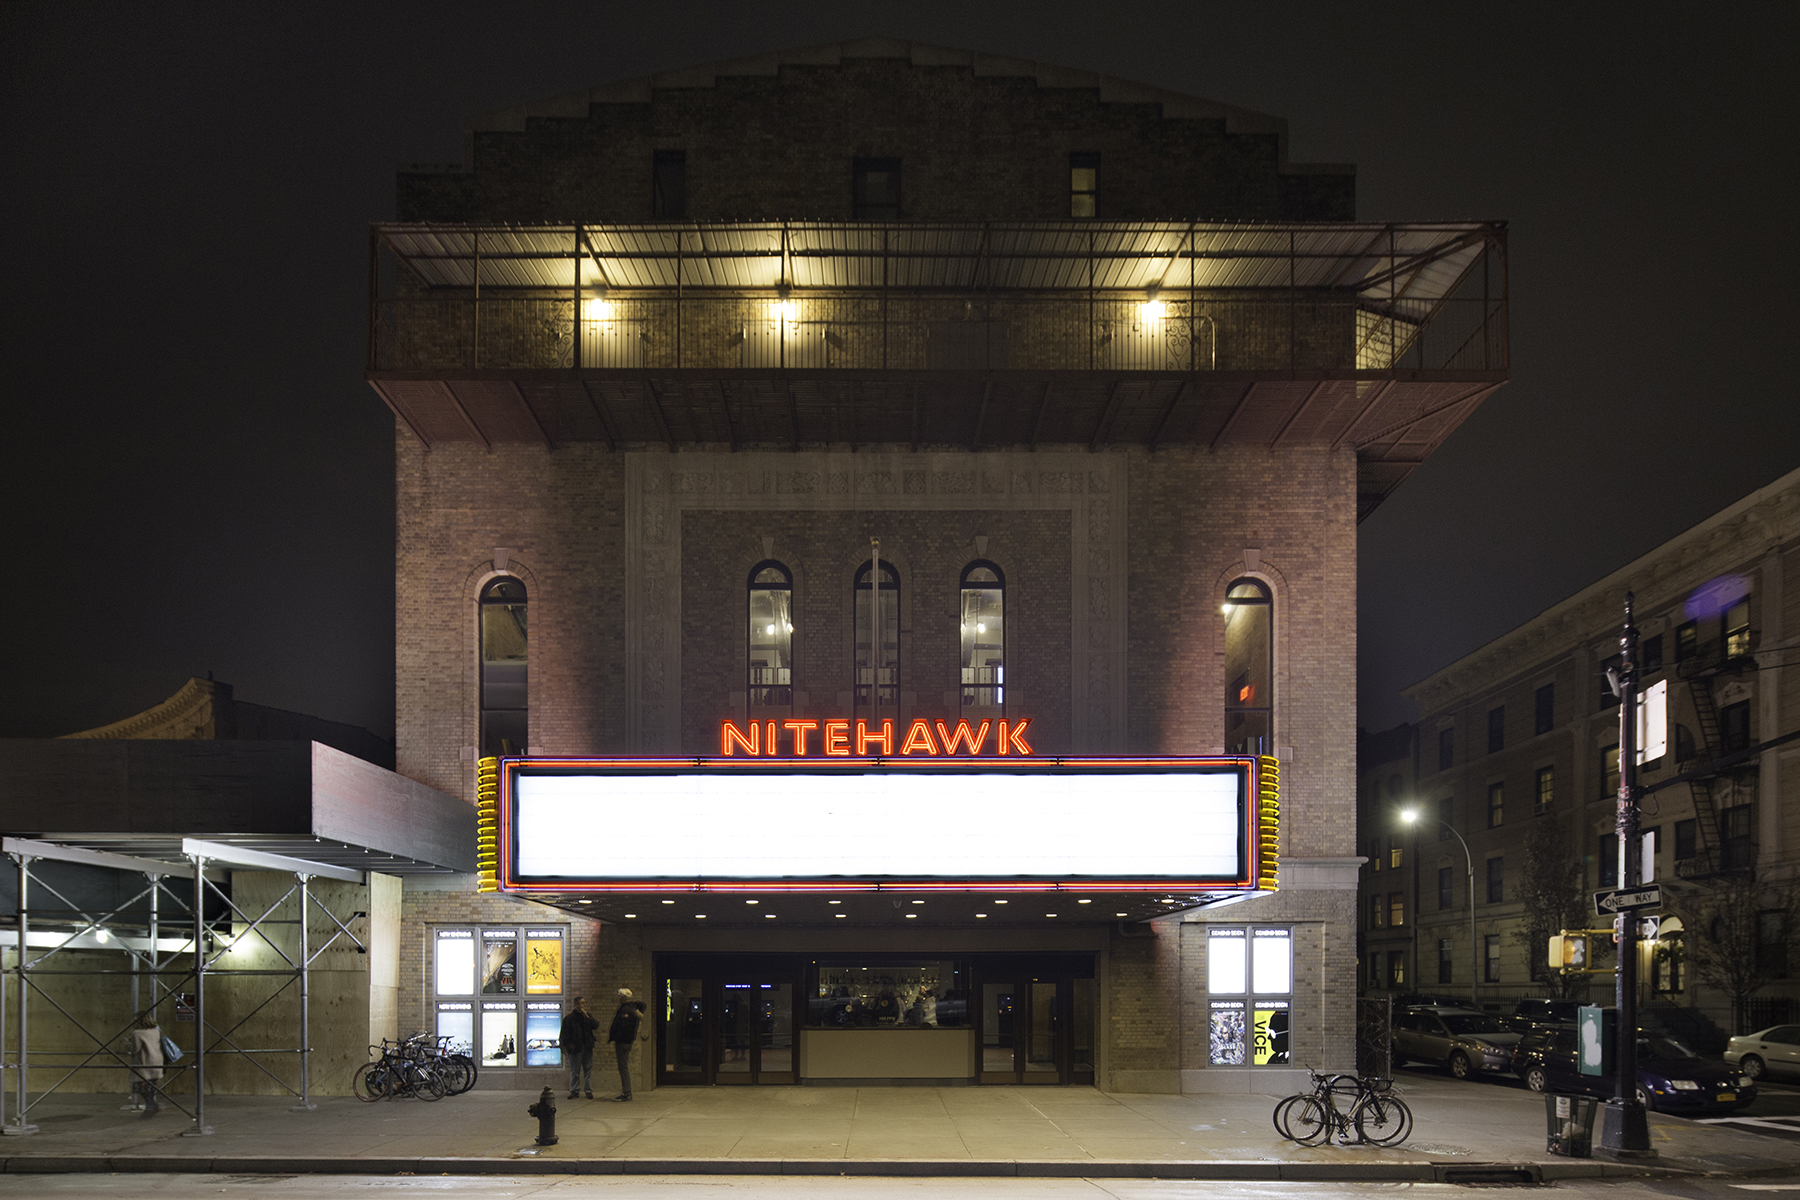 Exterior of the Nitehawk Cinema at 188 Prospect Park West, Brooklyn, NY where 2L Engineering provided MEP-FP engineering services to support the renovation.